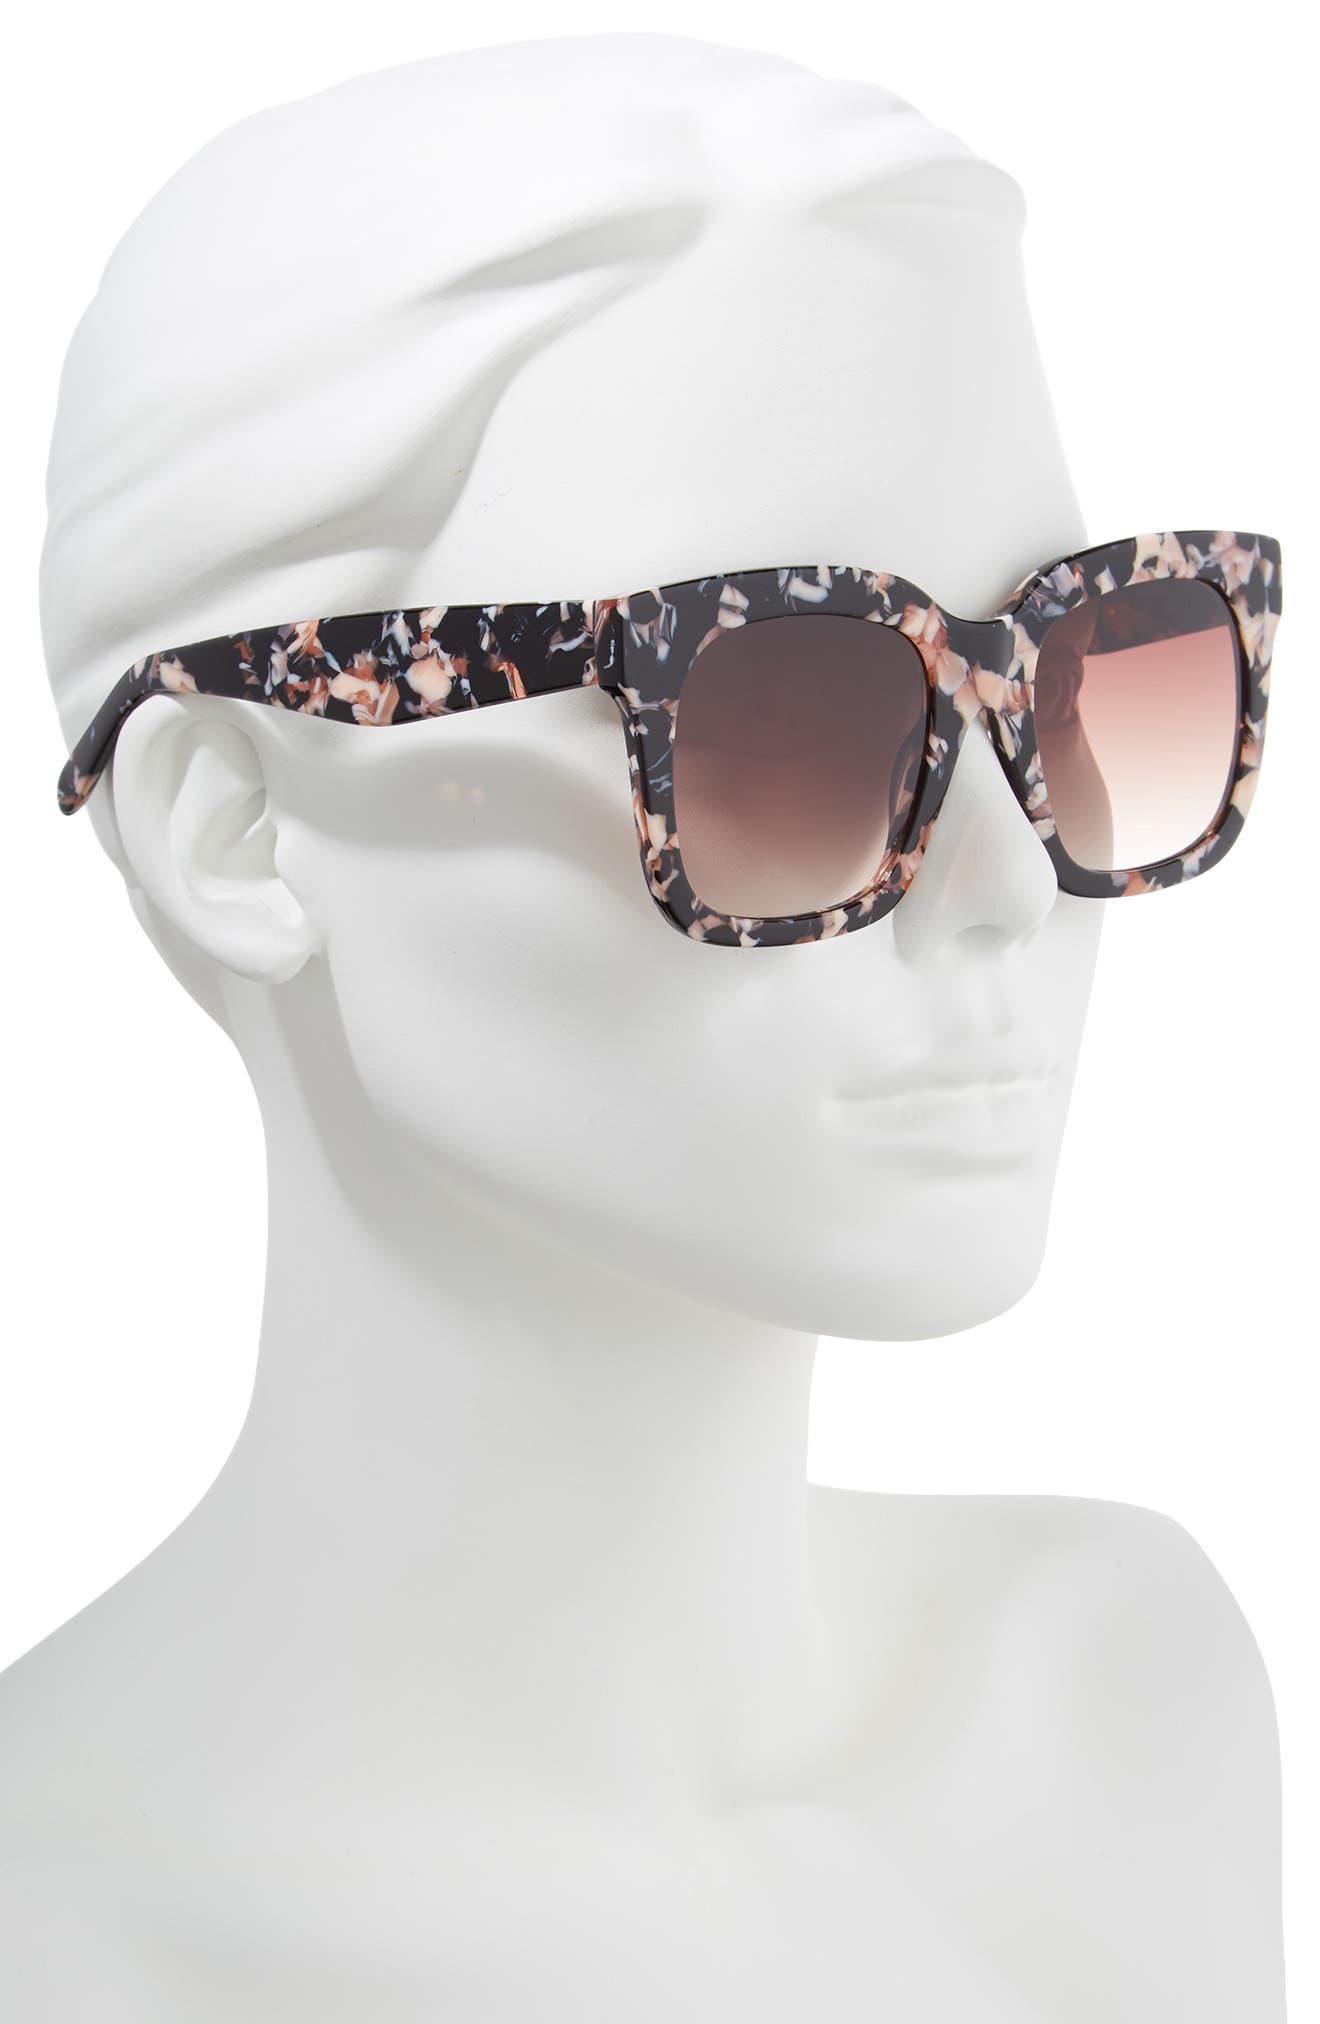 Coco 52mm Sunglasses,                             Alternate thumbnail 2, color,                             Black Pink Marble